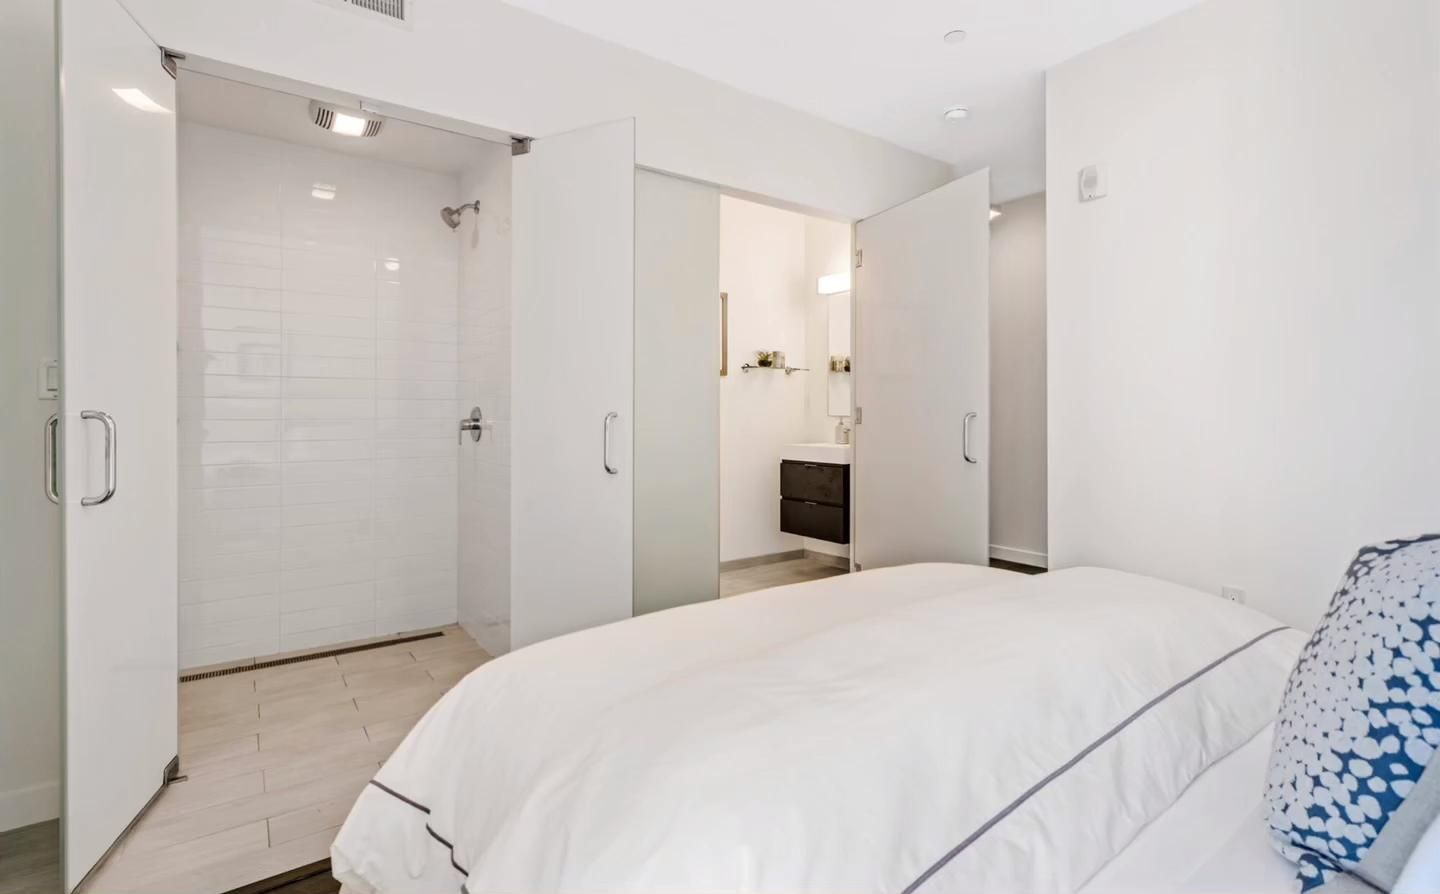 Unique + sleek, like the architect who created 1515 15th Street - Stanley Saitowitz! Congrats to Hanna Jung's client for buying this amazing 2 bed, 2 bath condo and thank you for making it a smooth transaction!  #justsold #stanleysaitowitz #condo #sfcondo #innermission #sfrealestate #sanfranciscorealestate #onlyinsf #bayarearealestate #sfliving #cityliving #sflife #sanfranciscolife #sanfranciscoliving #streetsofsanfrancisco #onlyinsanfrancisco #realestatedonedifferently